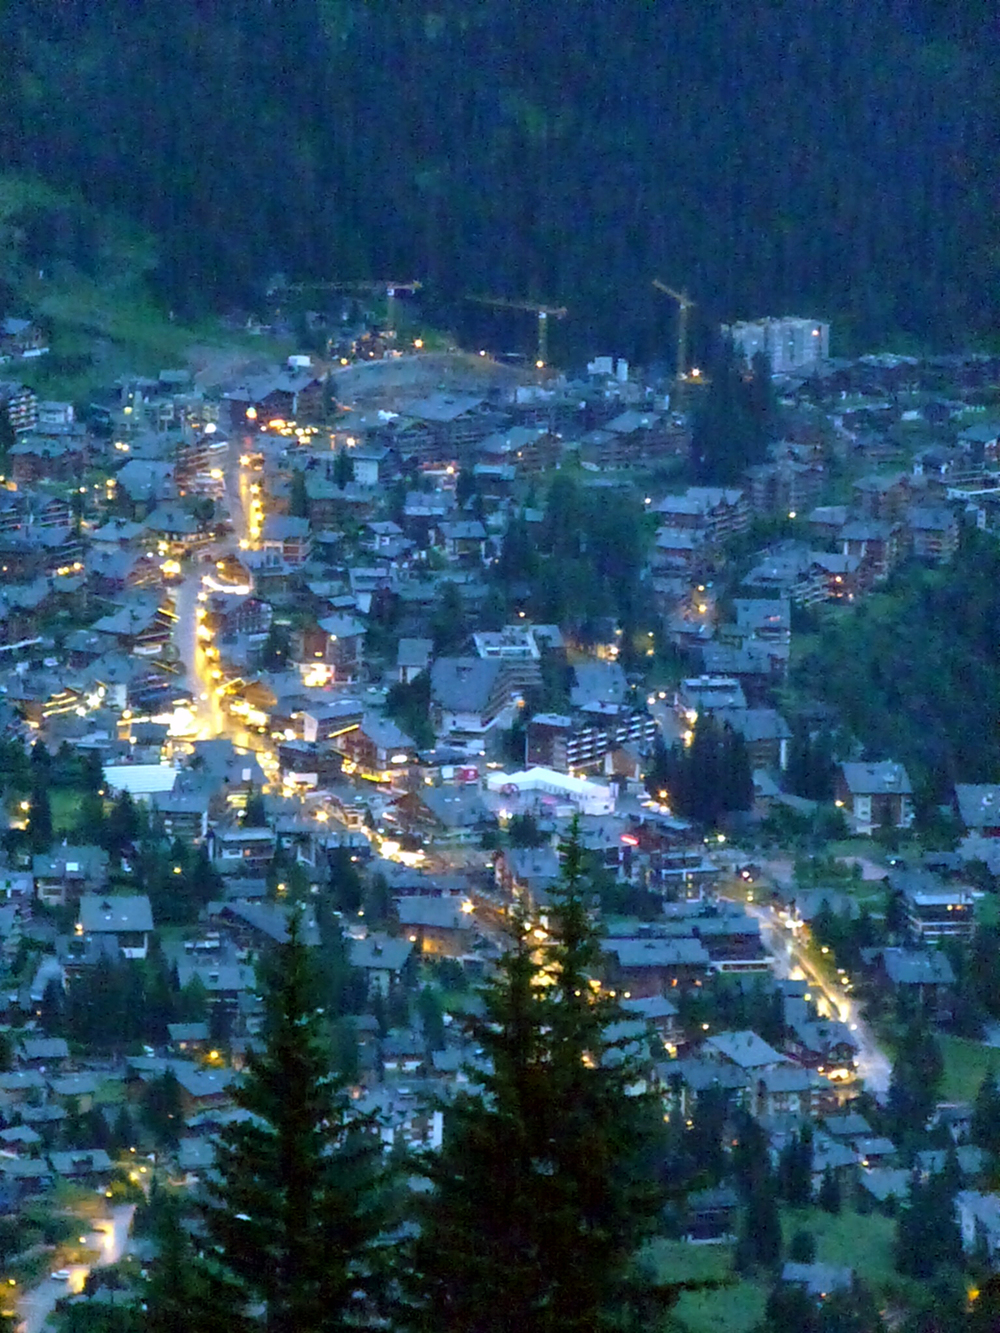 Verbier at night (Photo by Joseph Anderer)